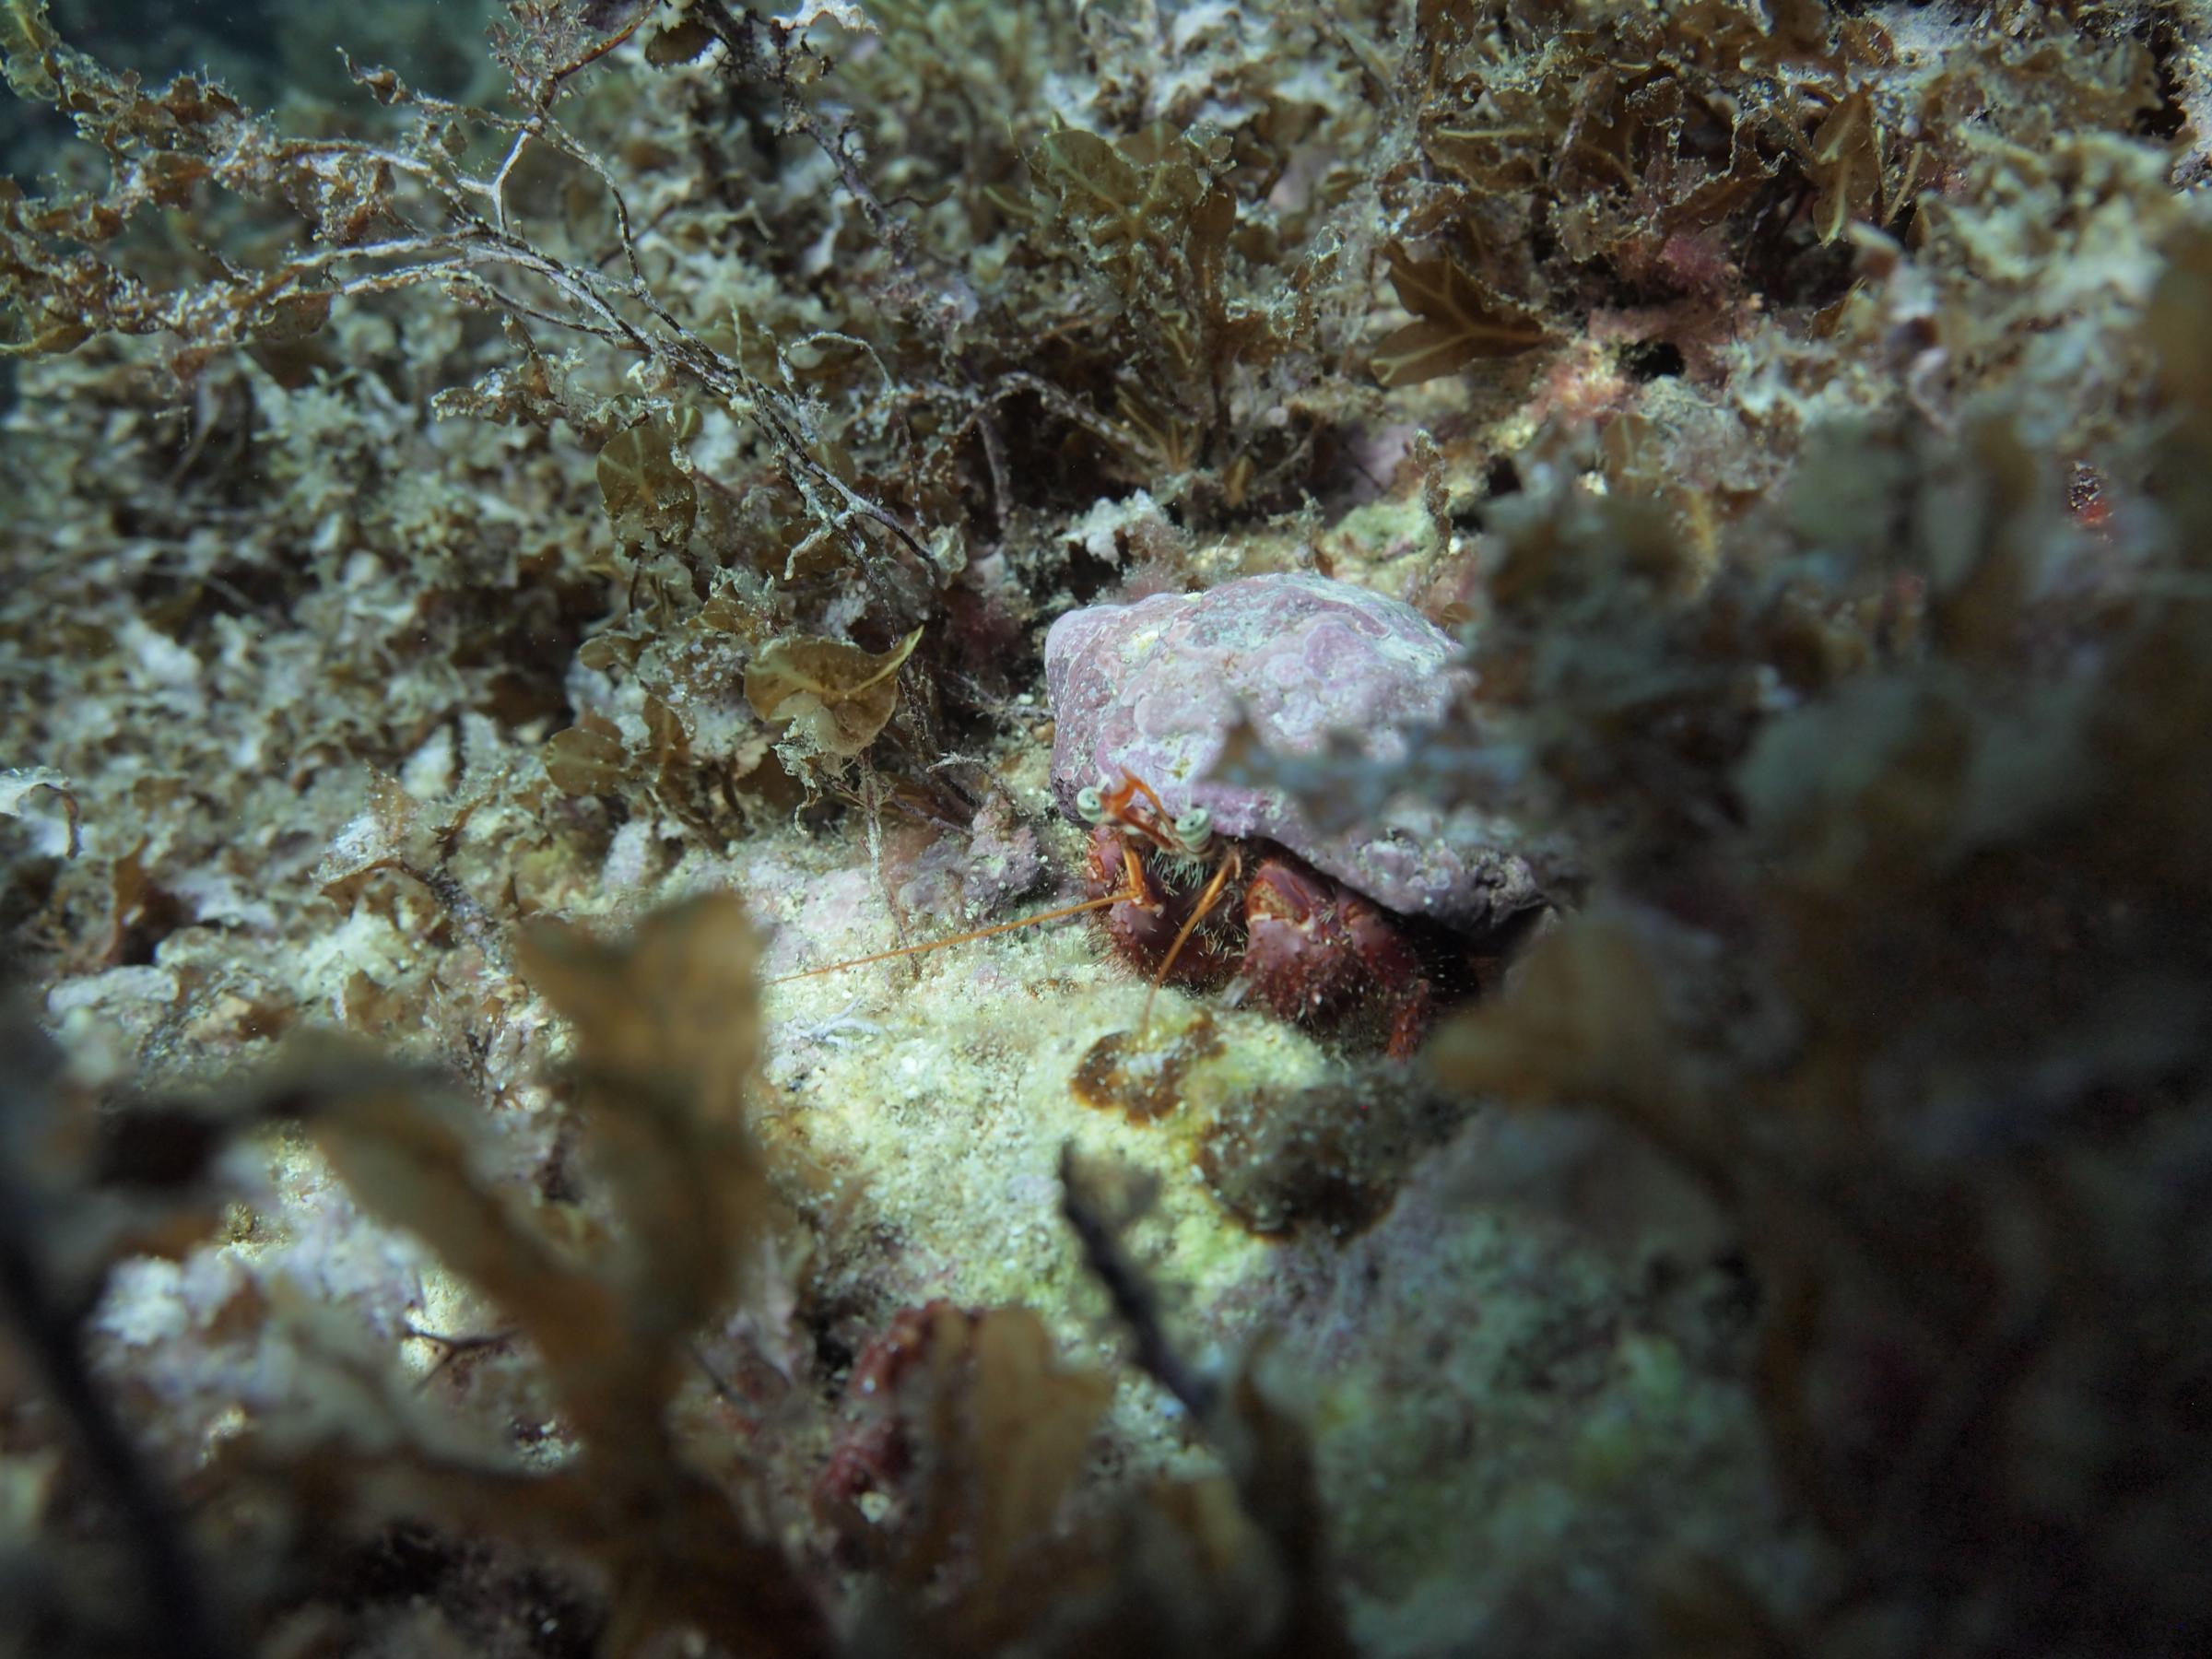 Hermit crab at Anchor Bay